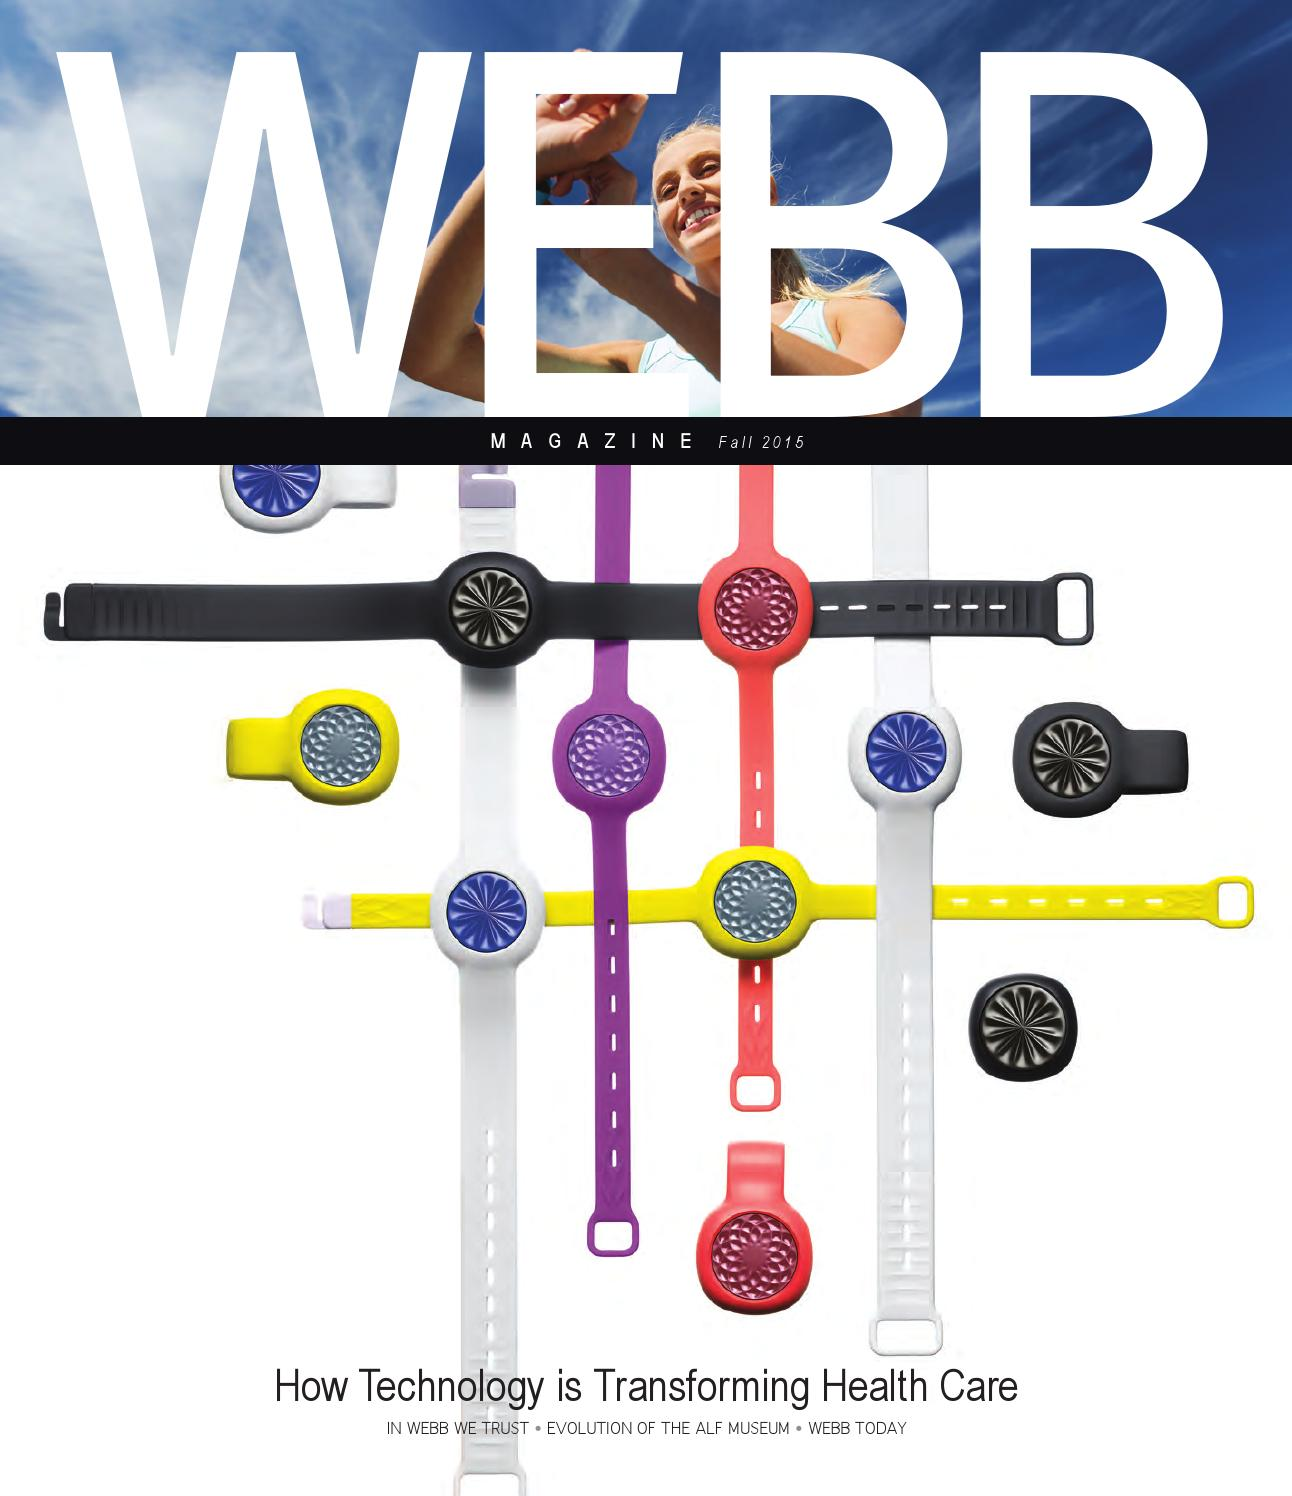 WEBB Magazine Fall 2015 edition by The Webb Schools - issuu